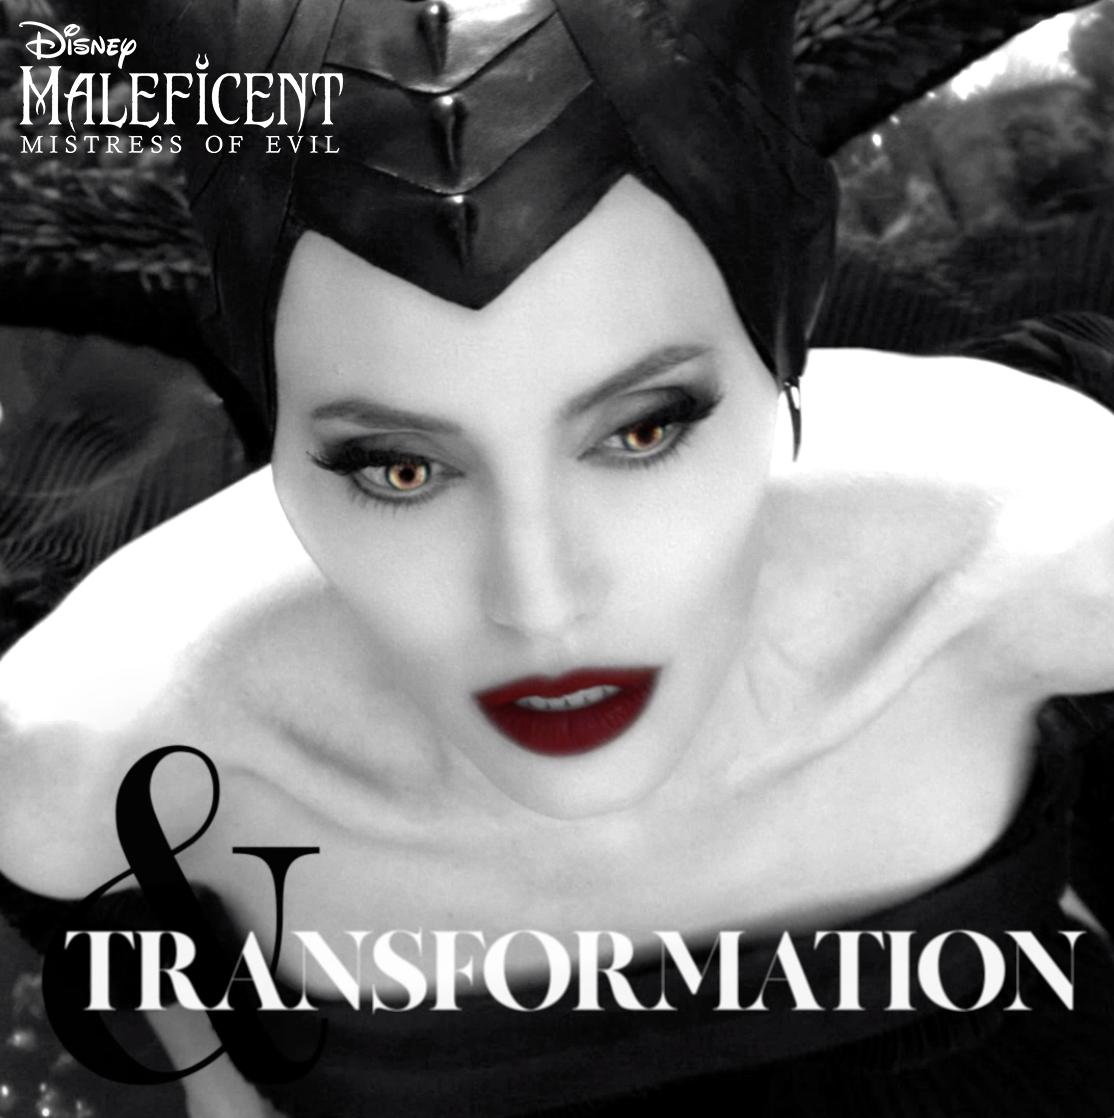 "There was a creature."" See #Maleficent: Mistress of Evil in theaters this Friday!"